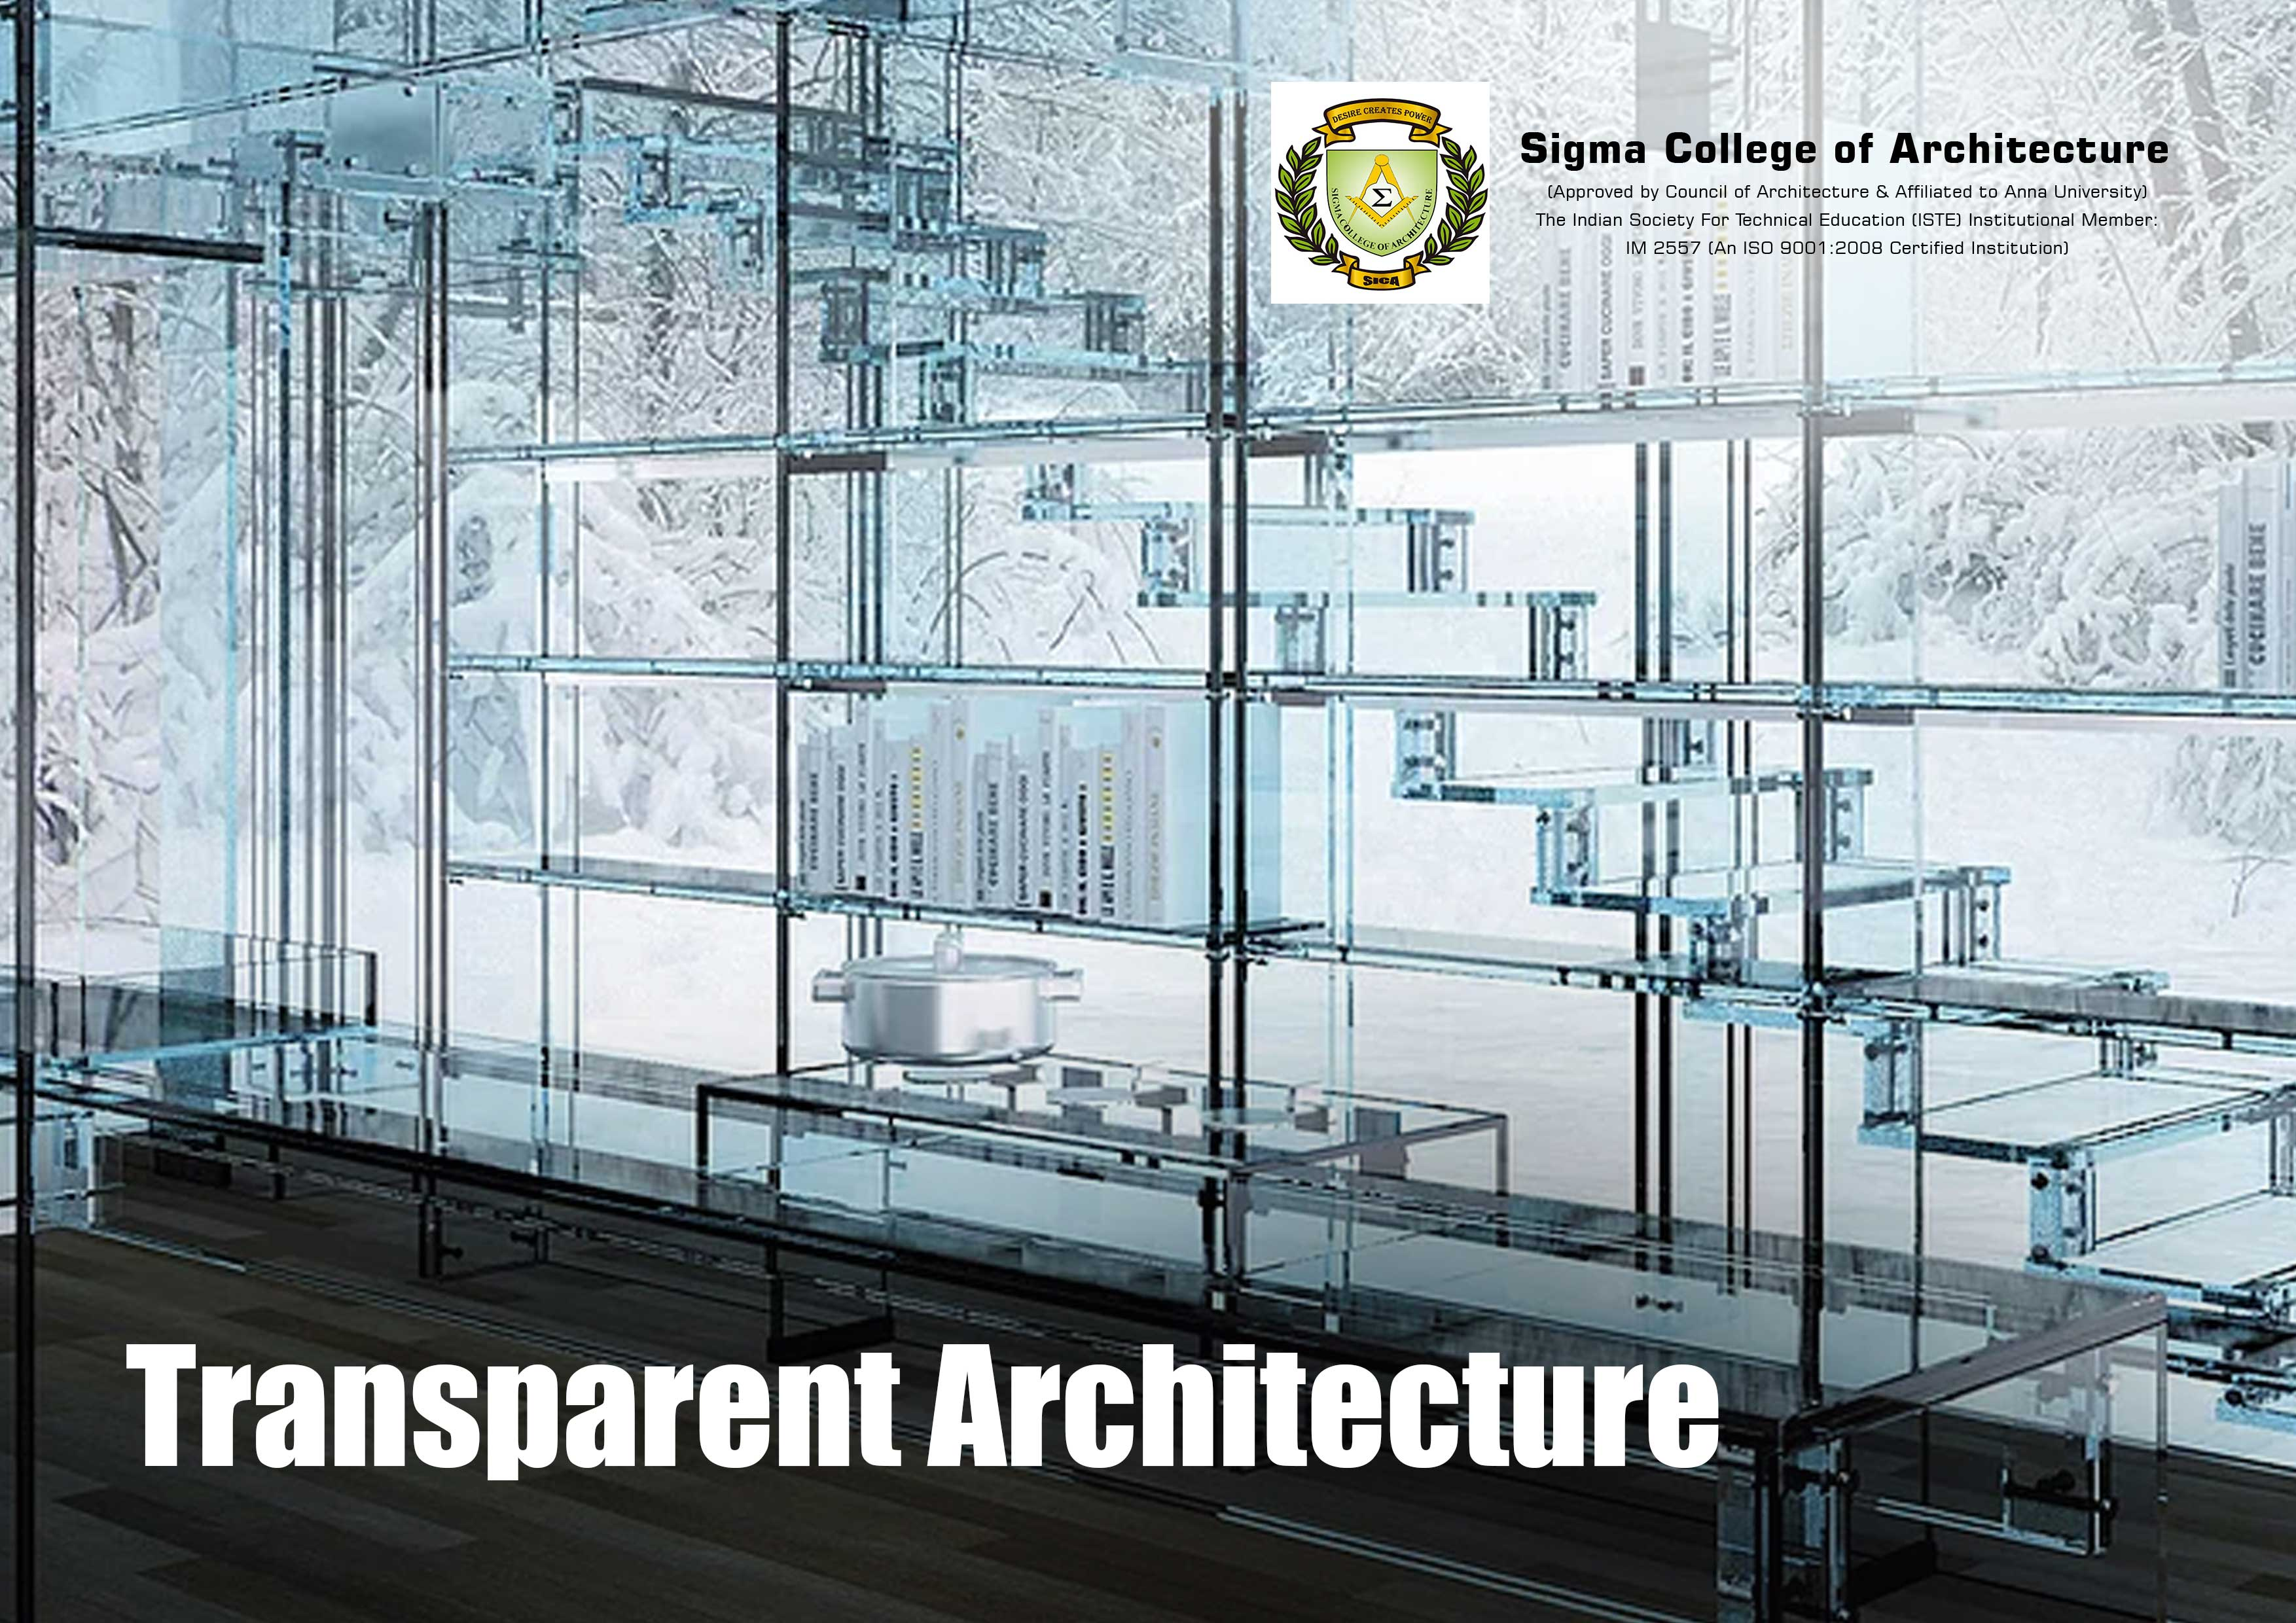 Transparent Architecture